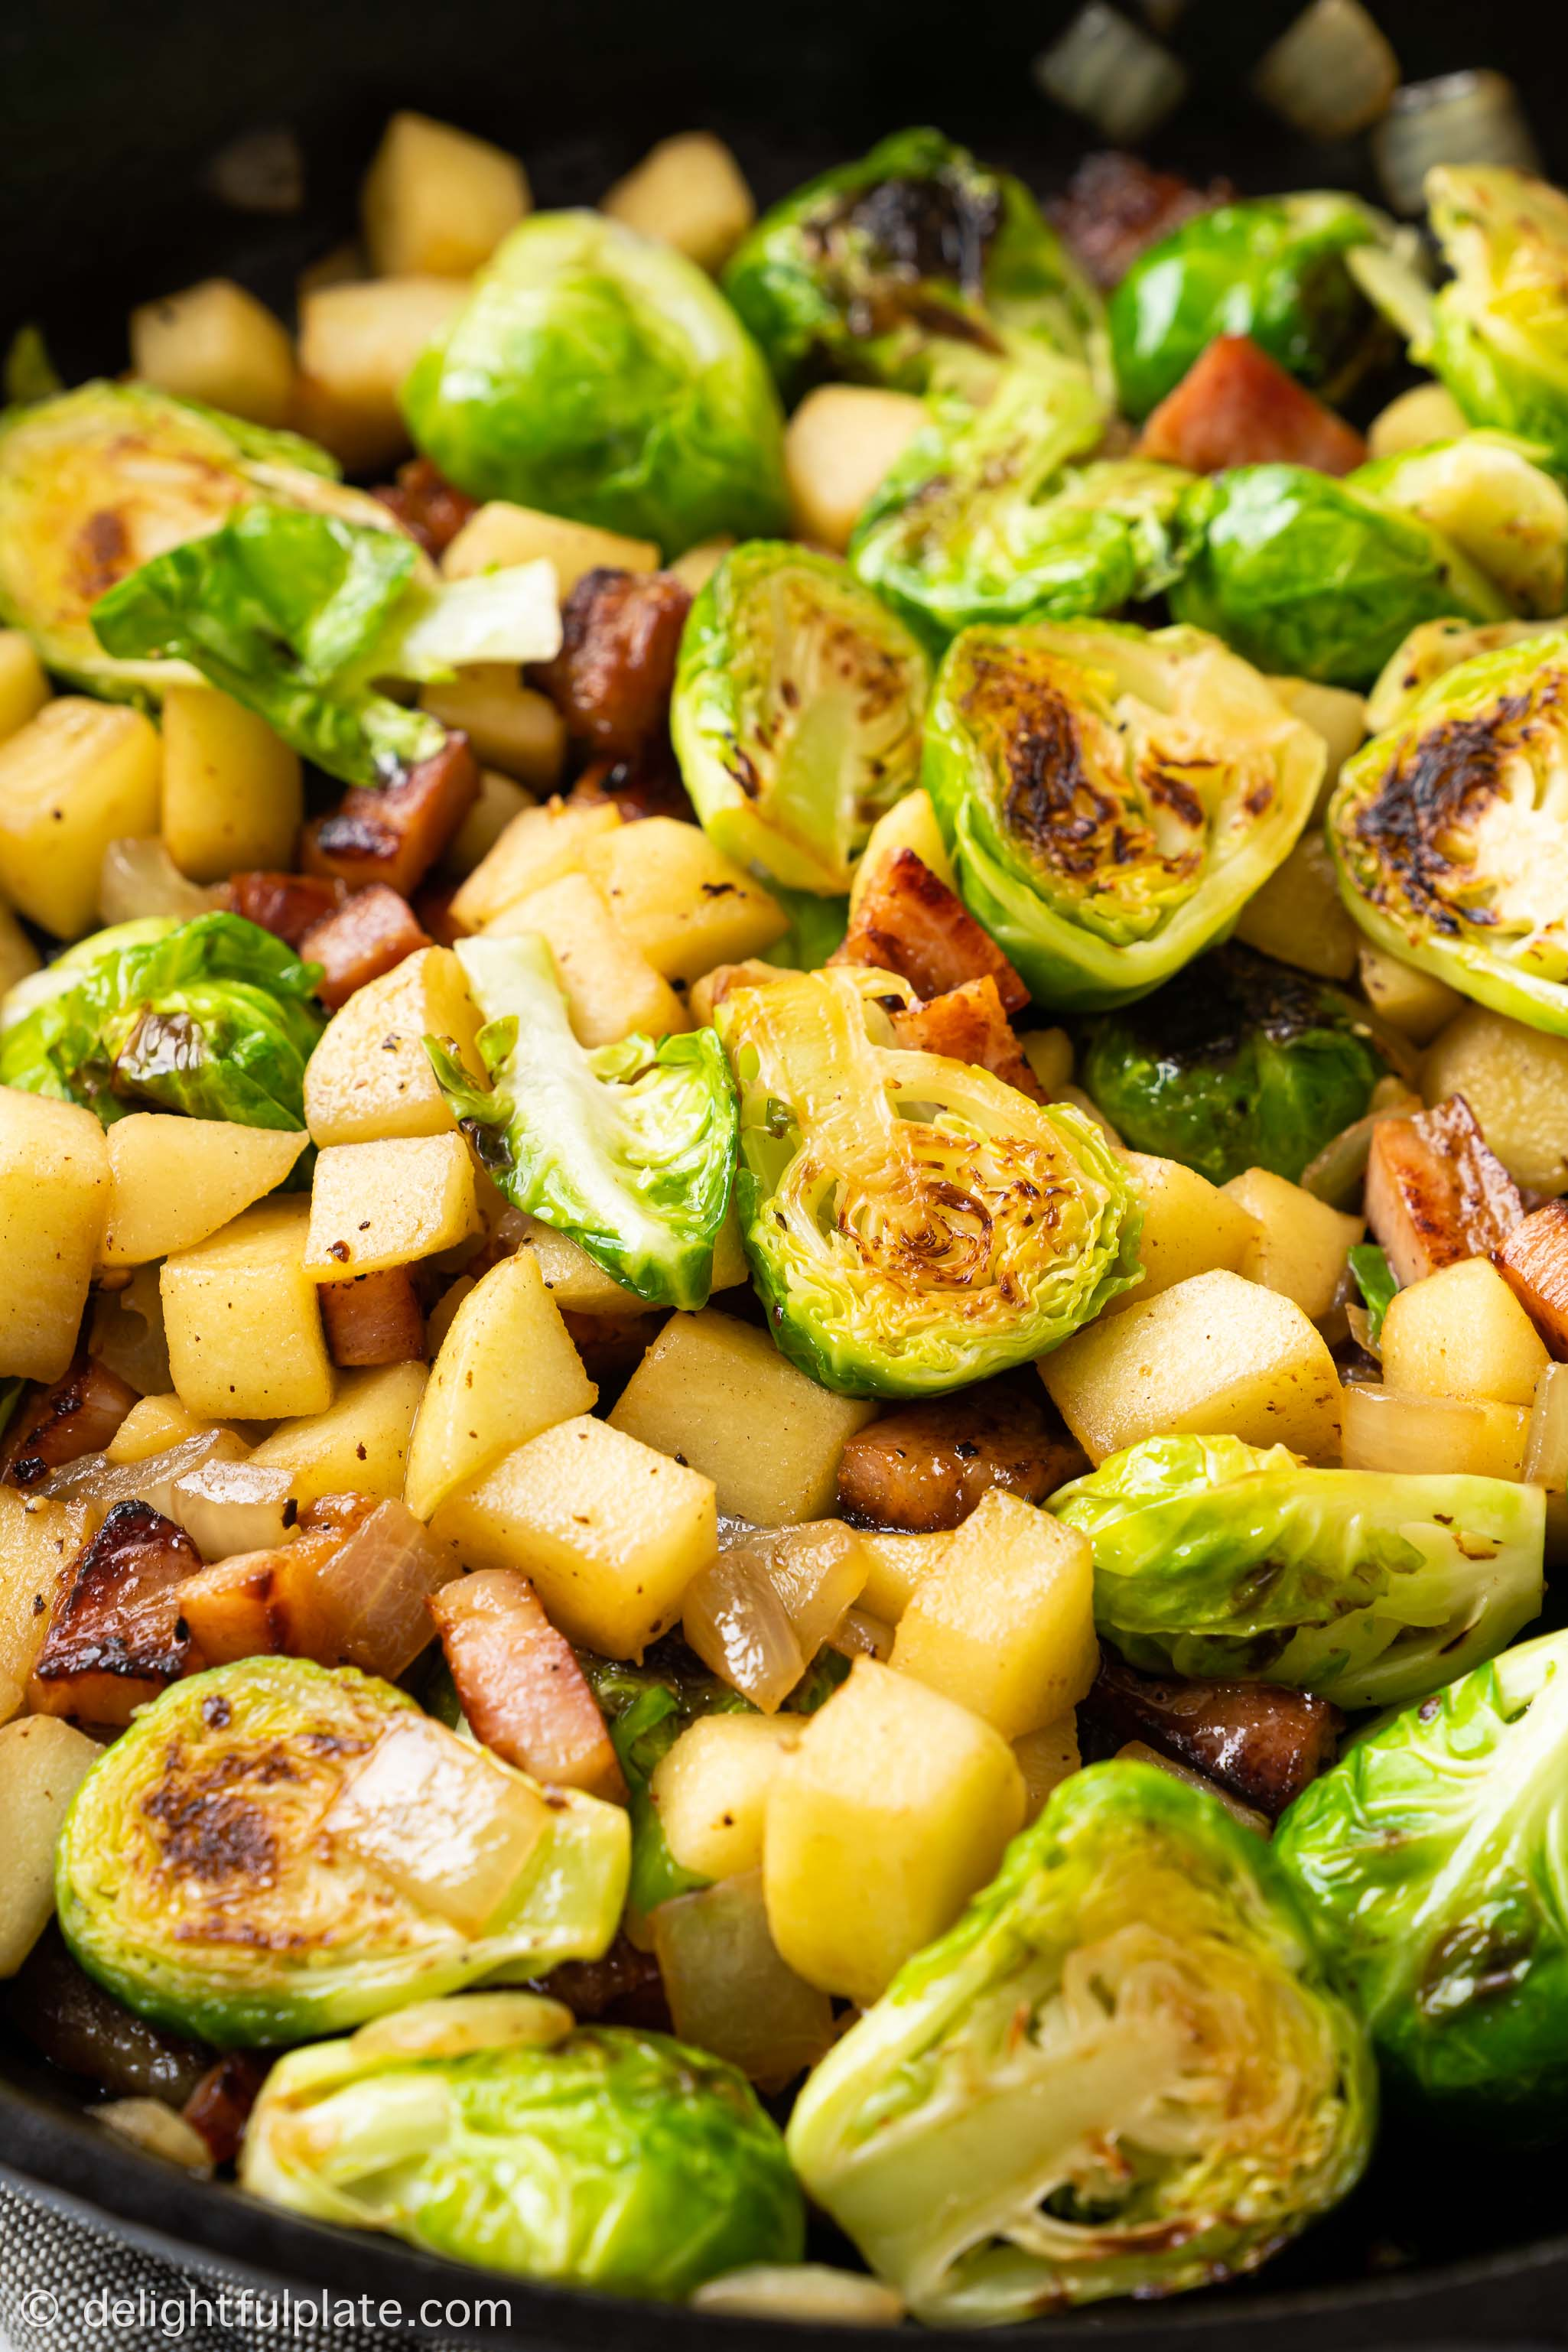 Sautéed Brussels Sprouts with Bacon and Apple in a cast iron pan